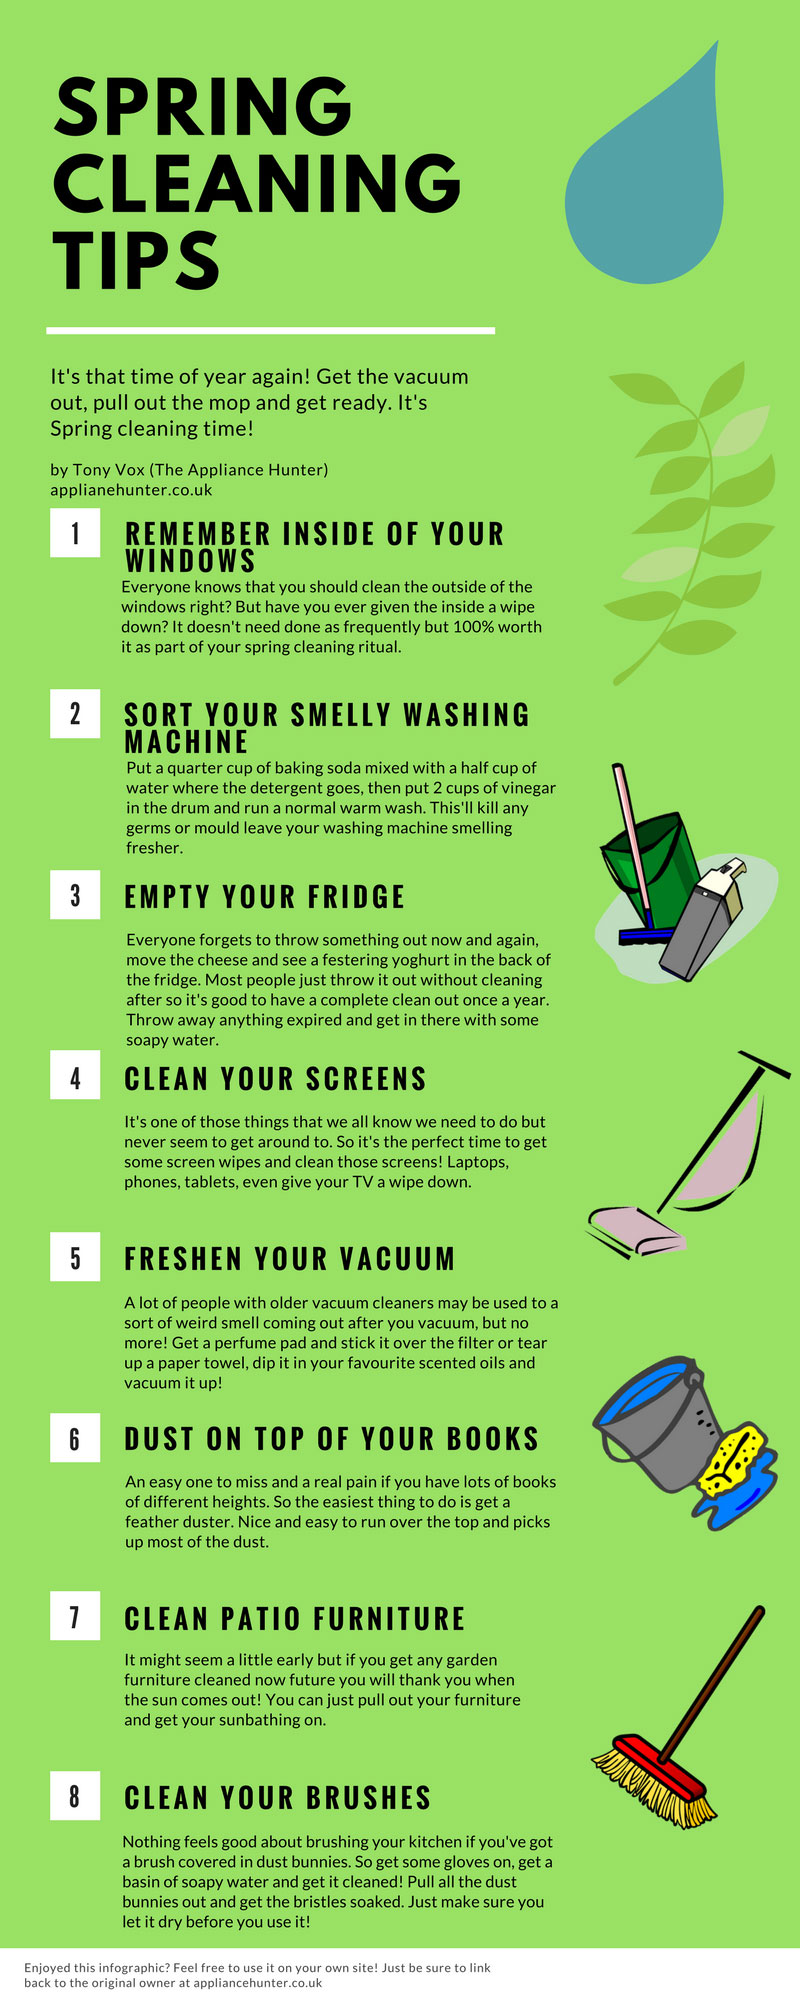 Spring Cleaning Tips To Transform Your Home